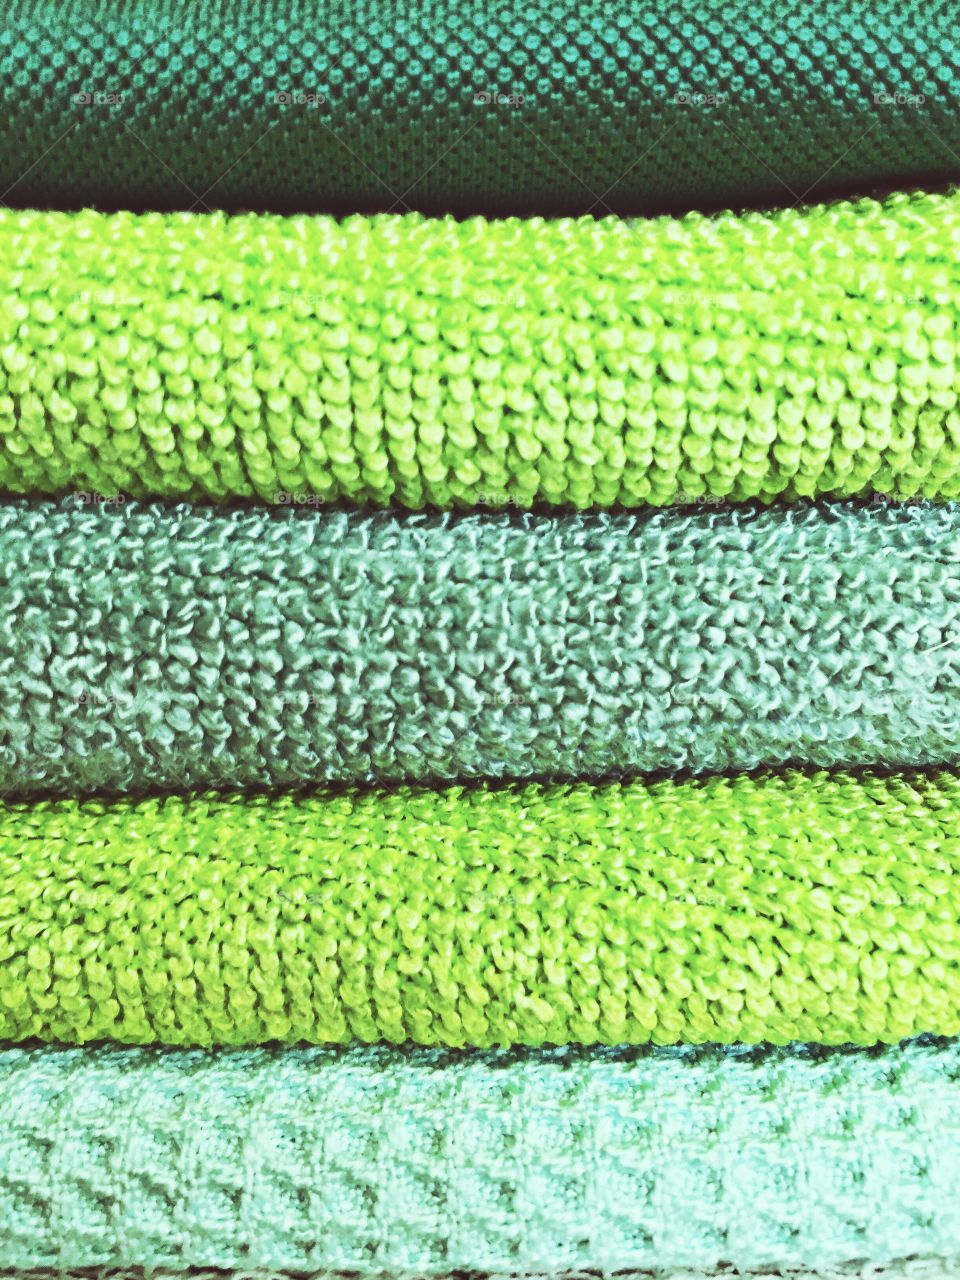 Green Color Story - Stack of folded microfiber cloths of various textures and shades of green